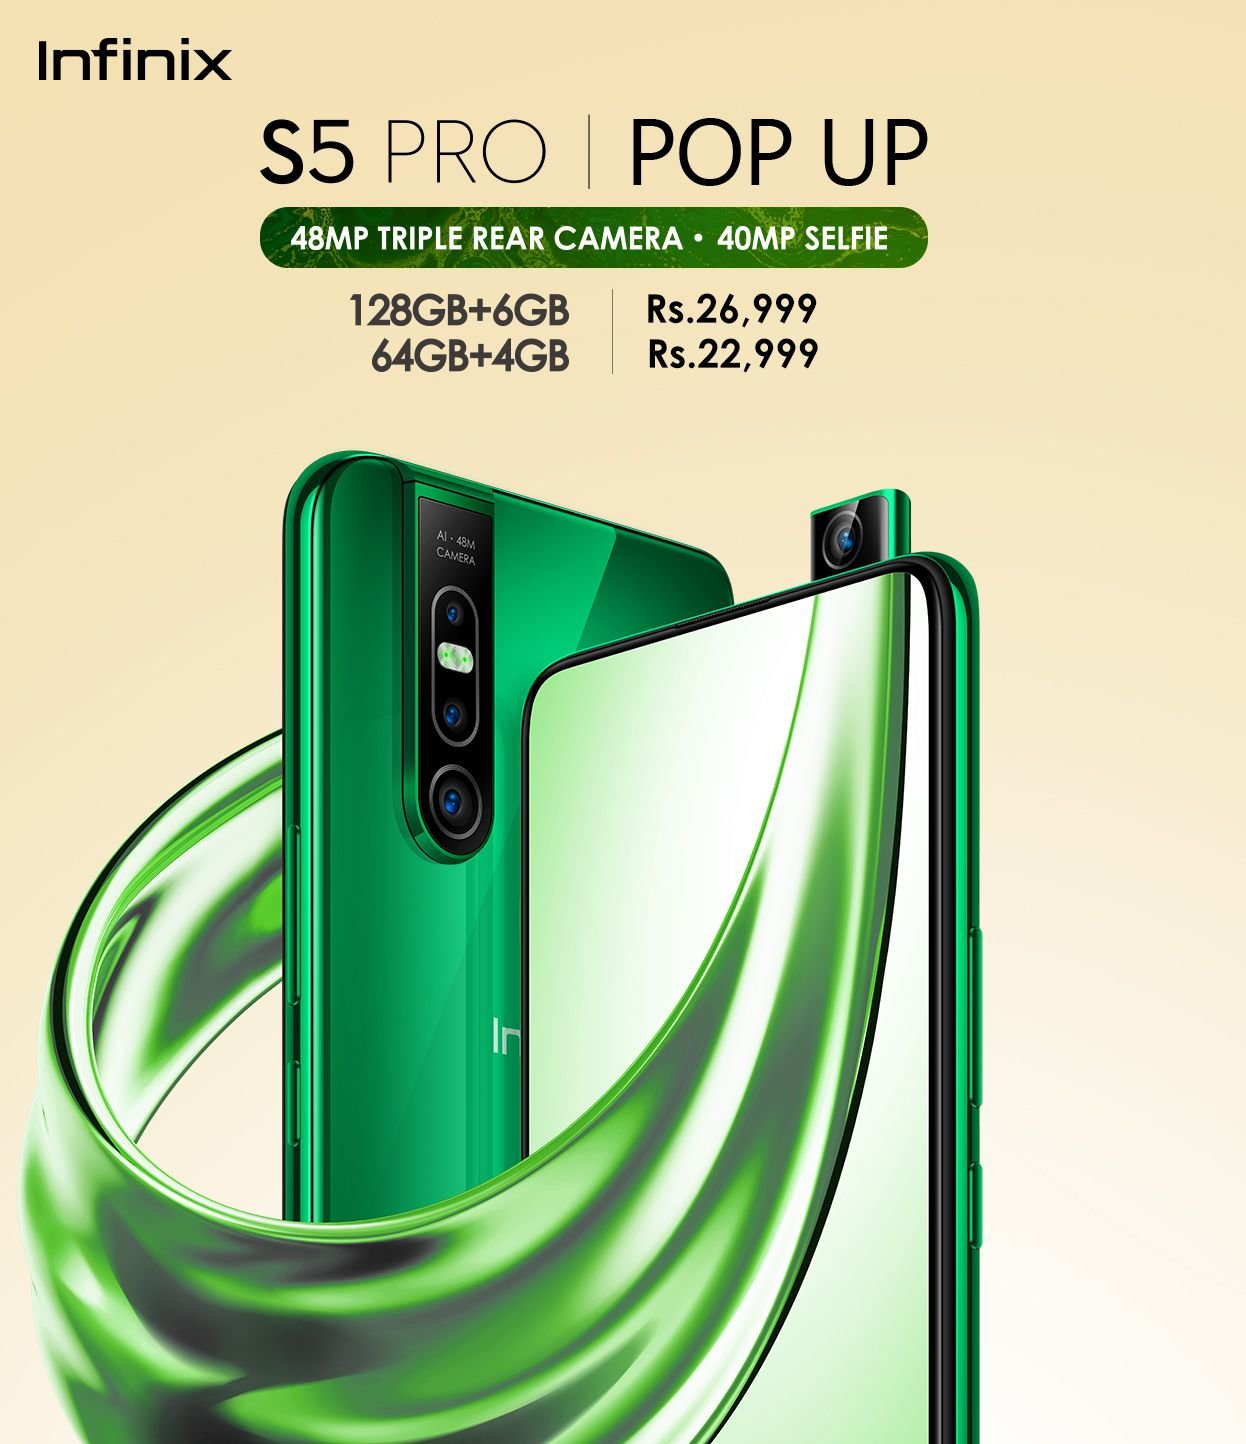 New version of Infinix S5 Pro launched in Pakistan, has 40-MP selfie 4